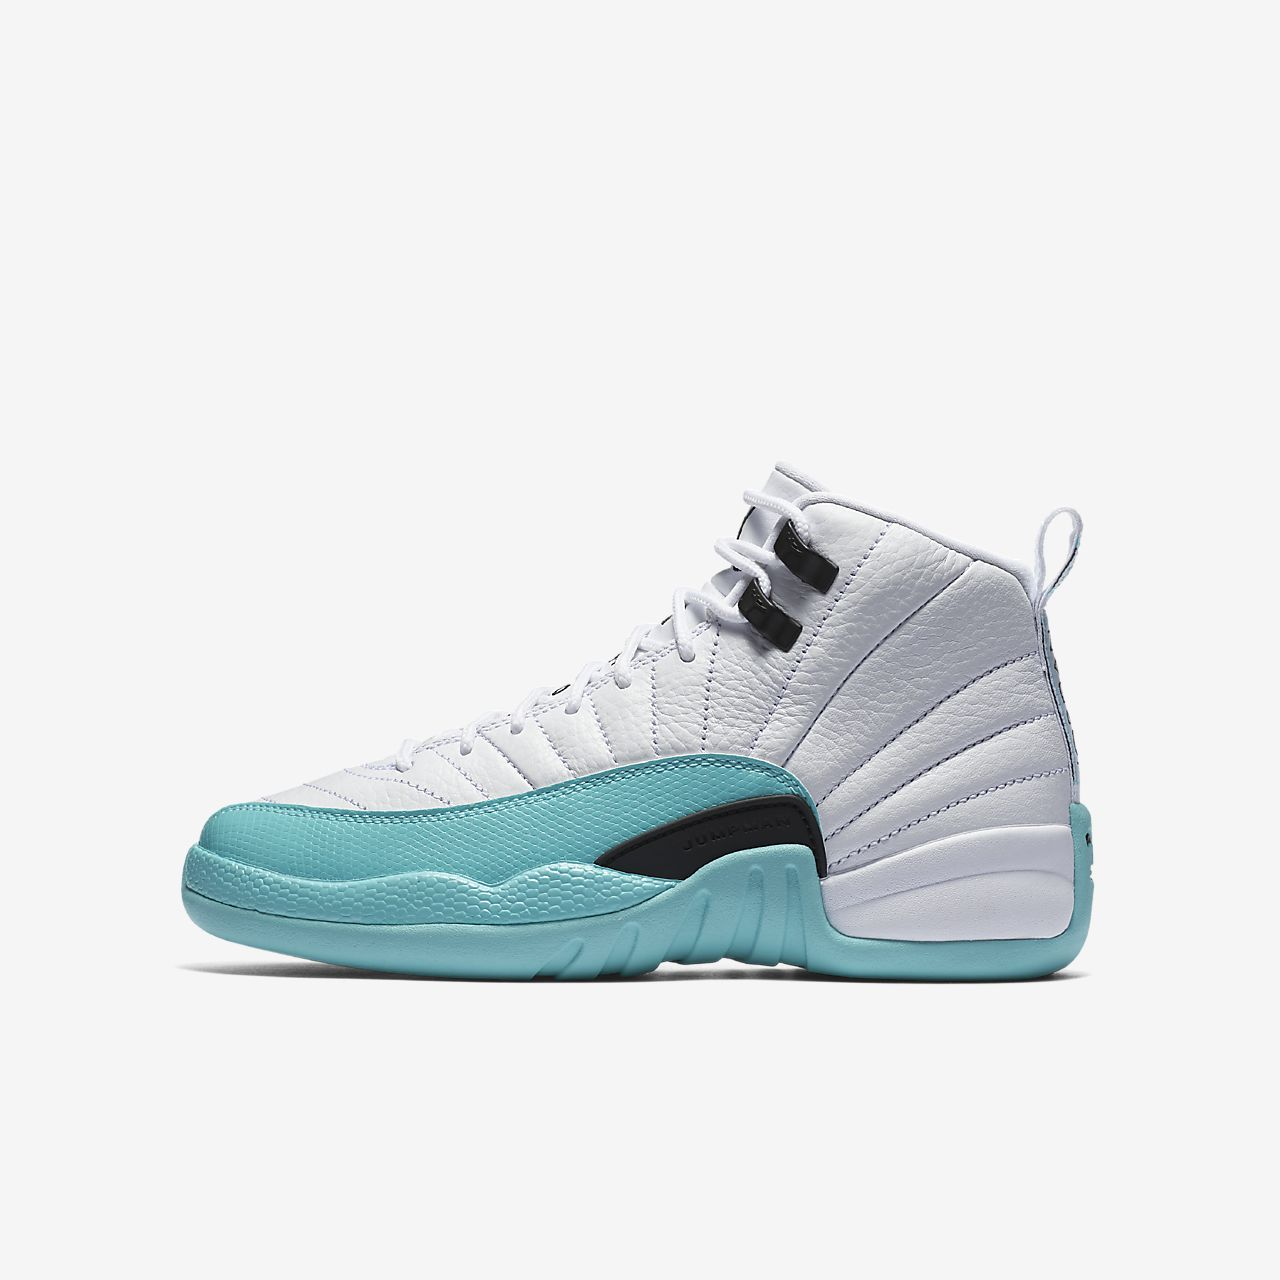 c69426c33cb555 Air Jordan 12 Retro Older Kids  Shoe. Nike.com SA